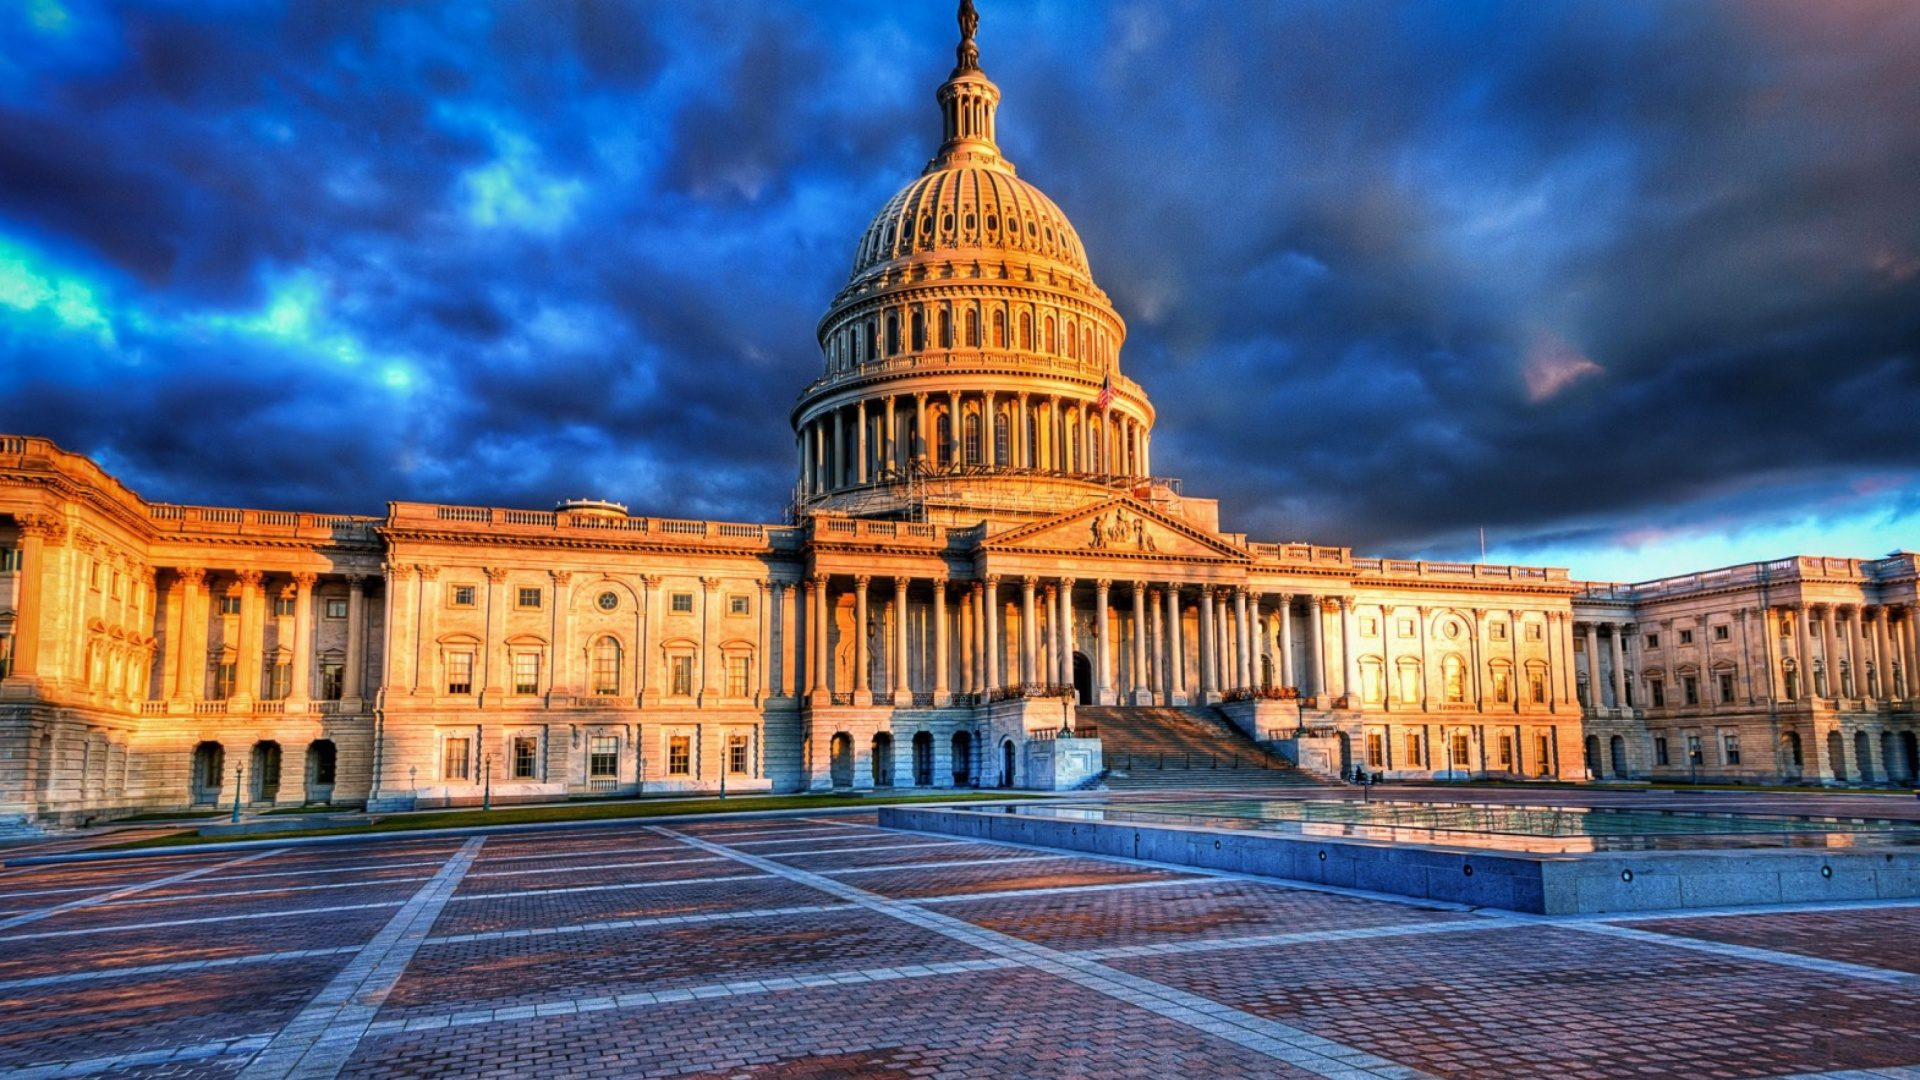 High Definition Wallpaper Of The Home Of United States Congress 1920x1080